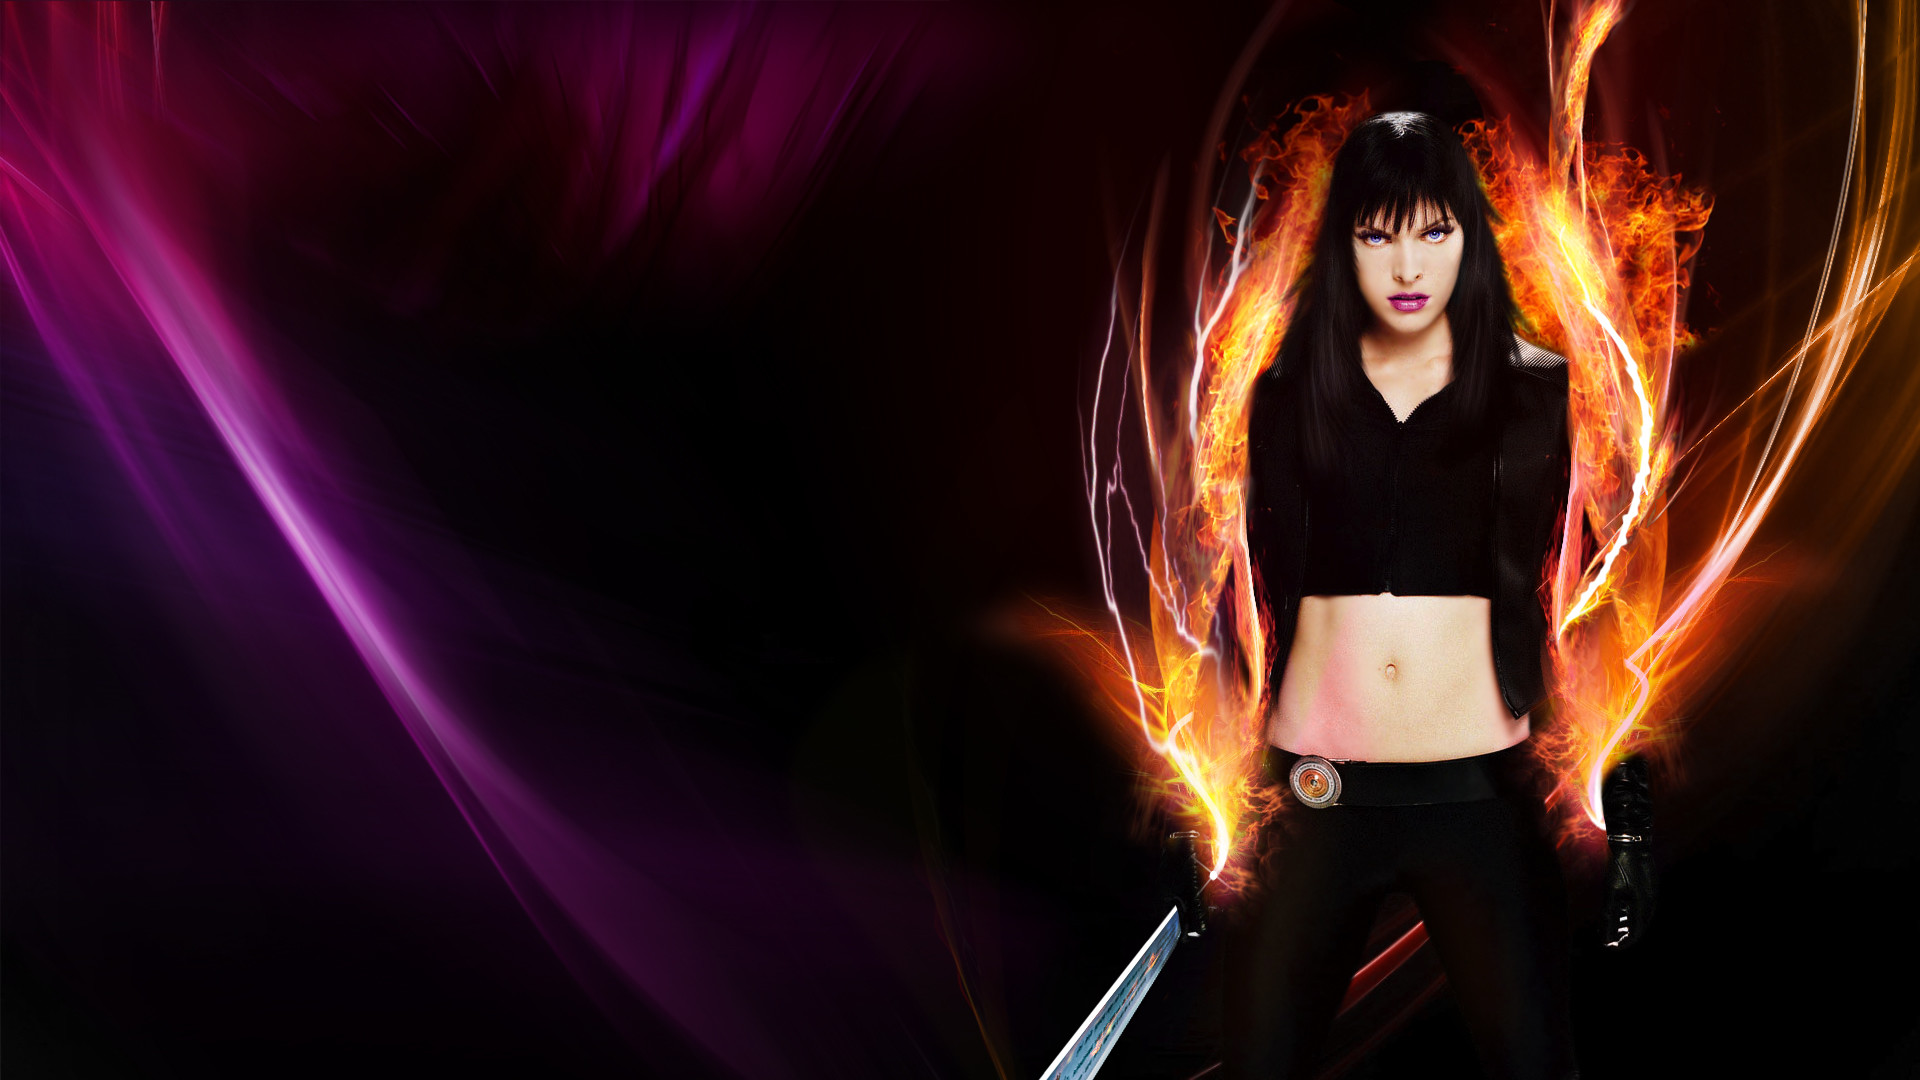 1920x1080 Ultraviolet, HD Wallpaper and background photos of Ultraviolet_MiX_Milla  for fans of Milla Jovovich images.